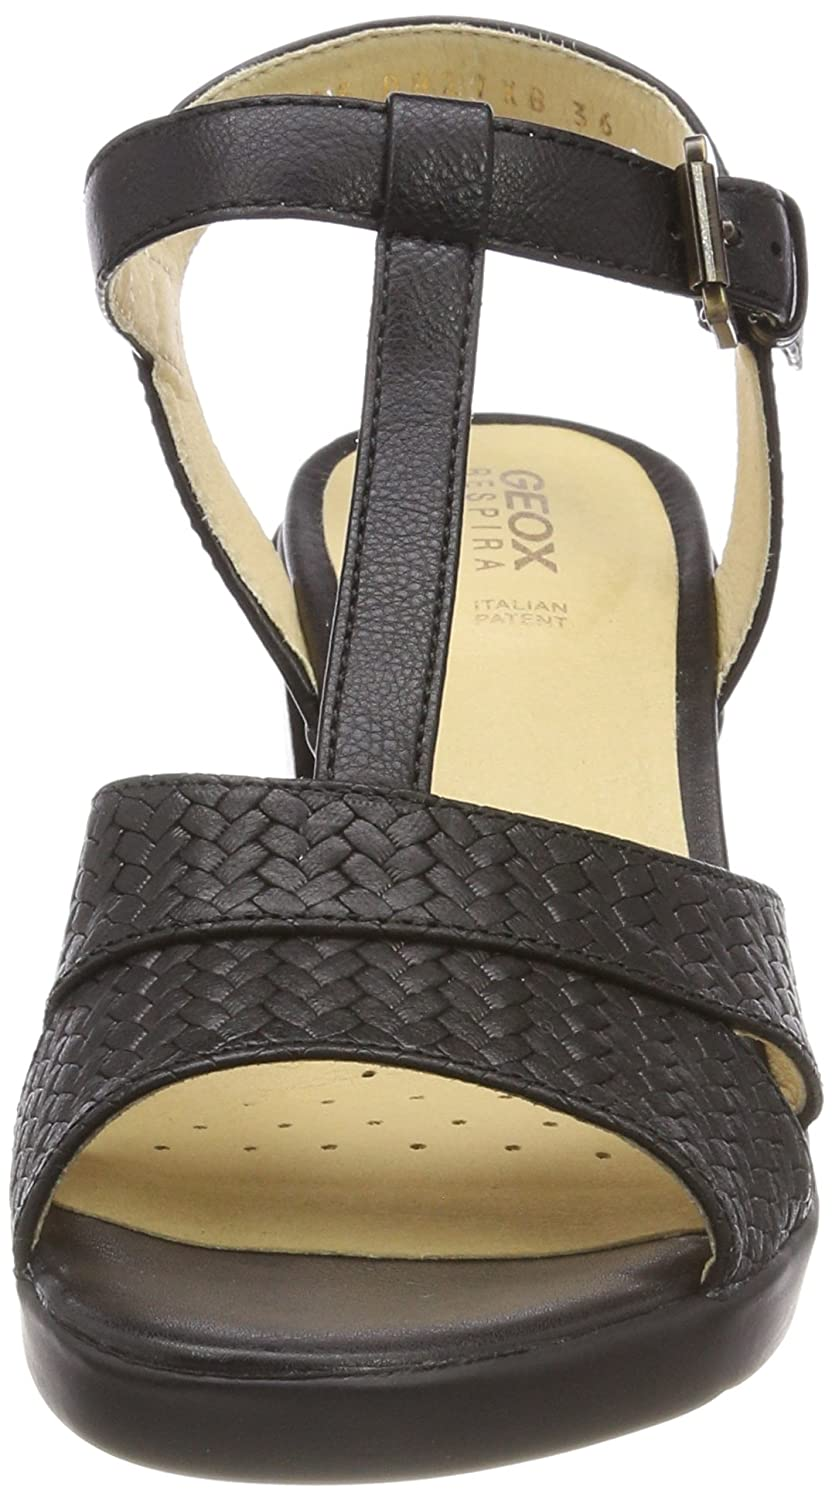 | Geox Woman Sandal with Medium Black Heels